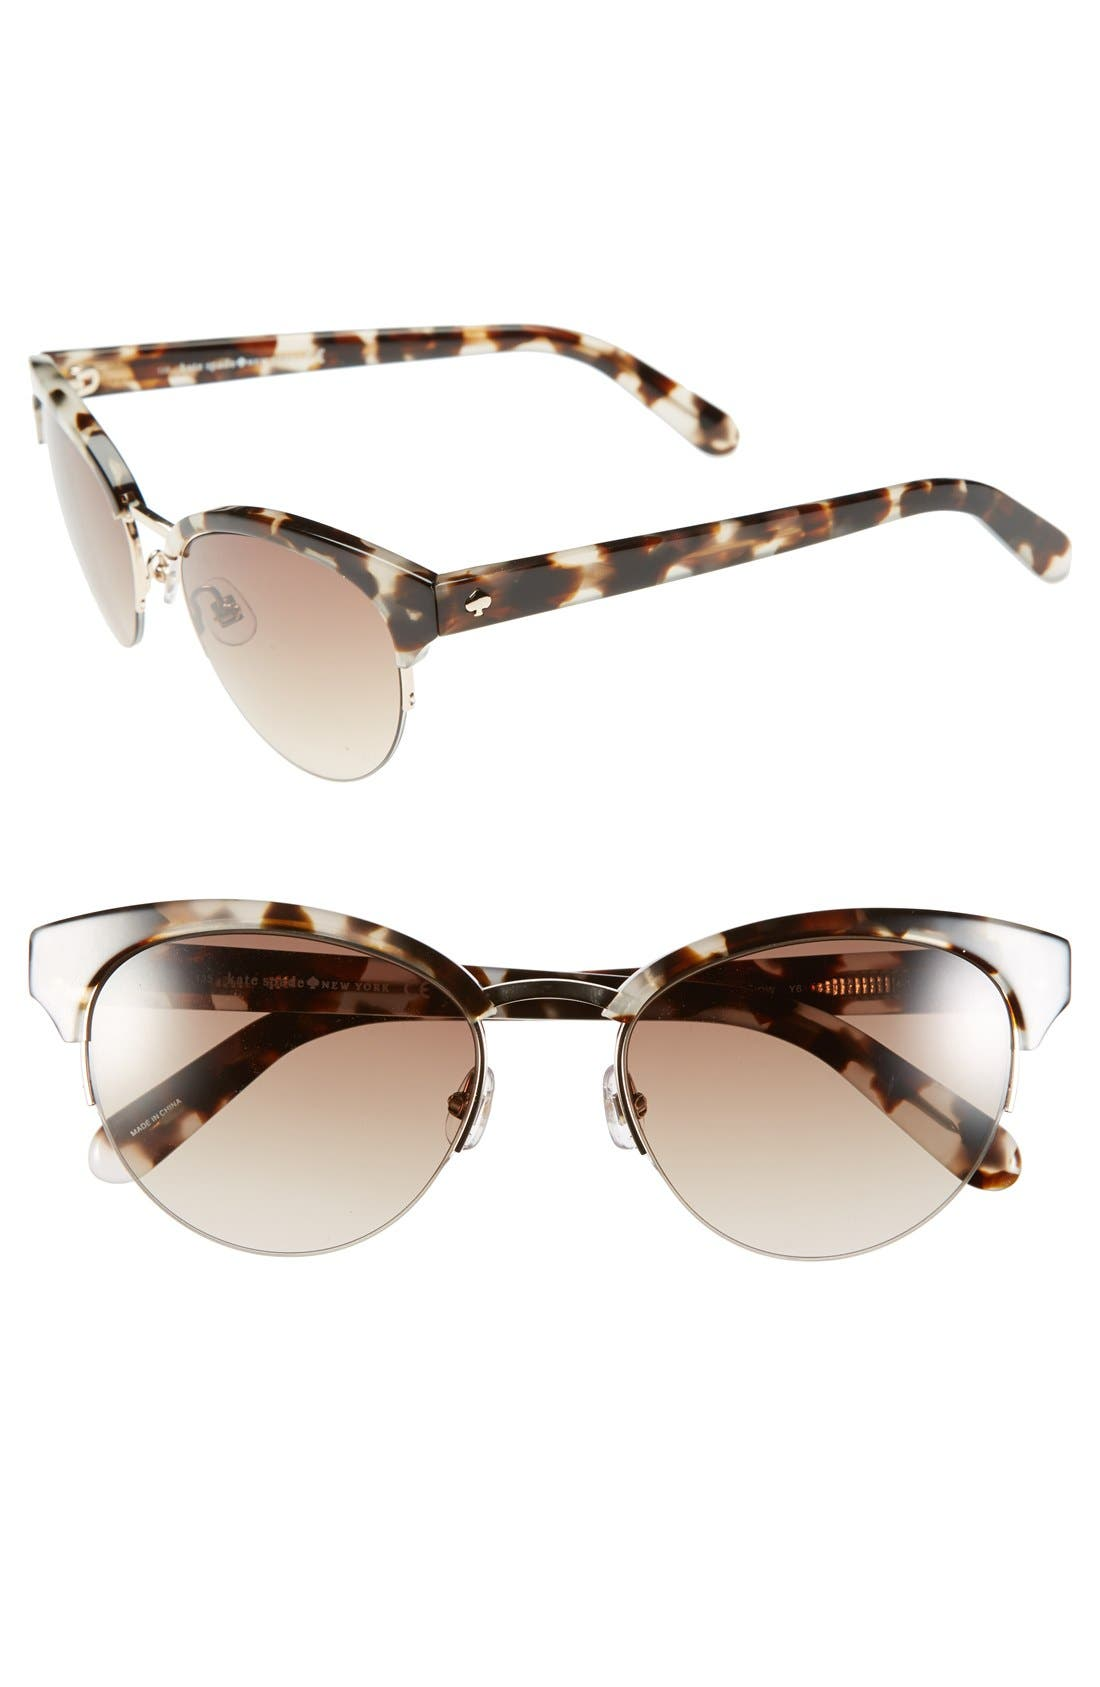 Main Image - kate spade new york 53mm cat eye sunglasses